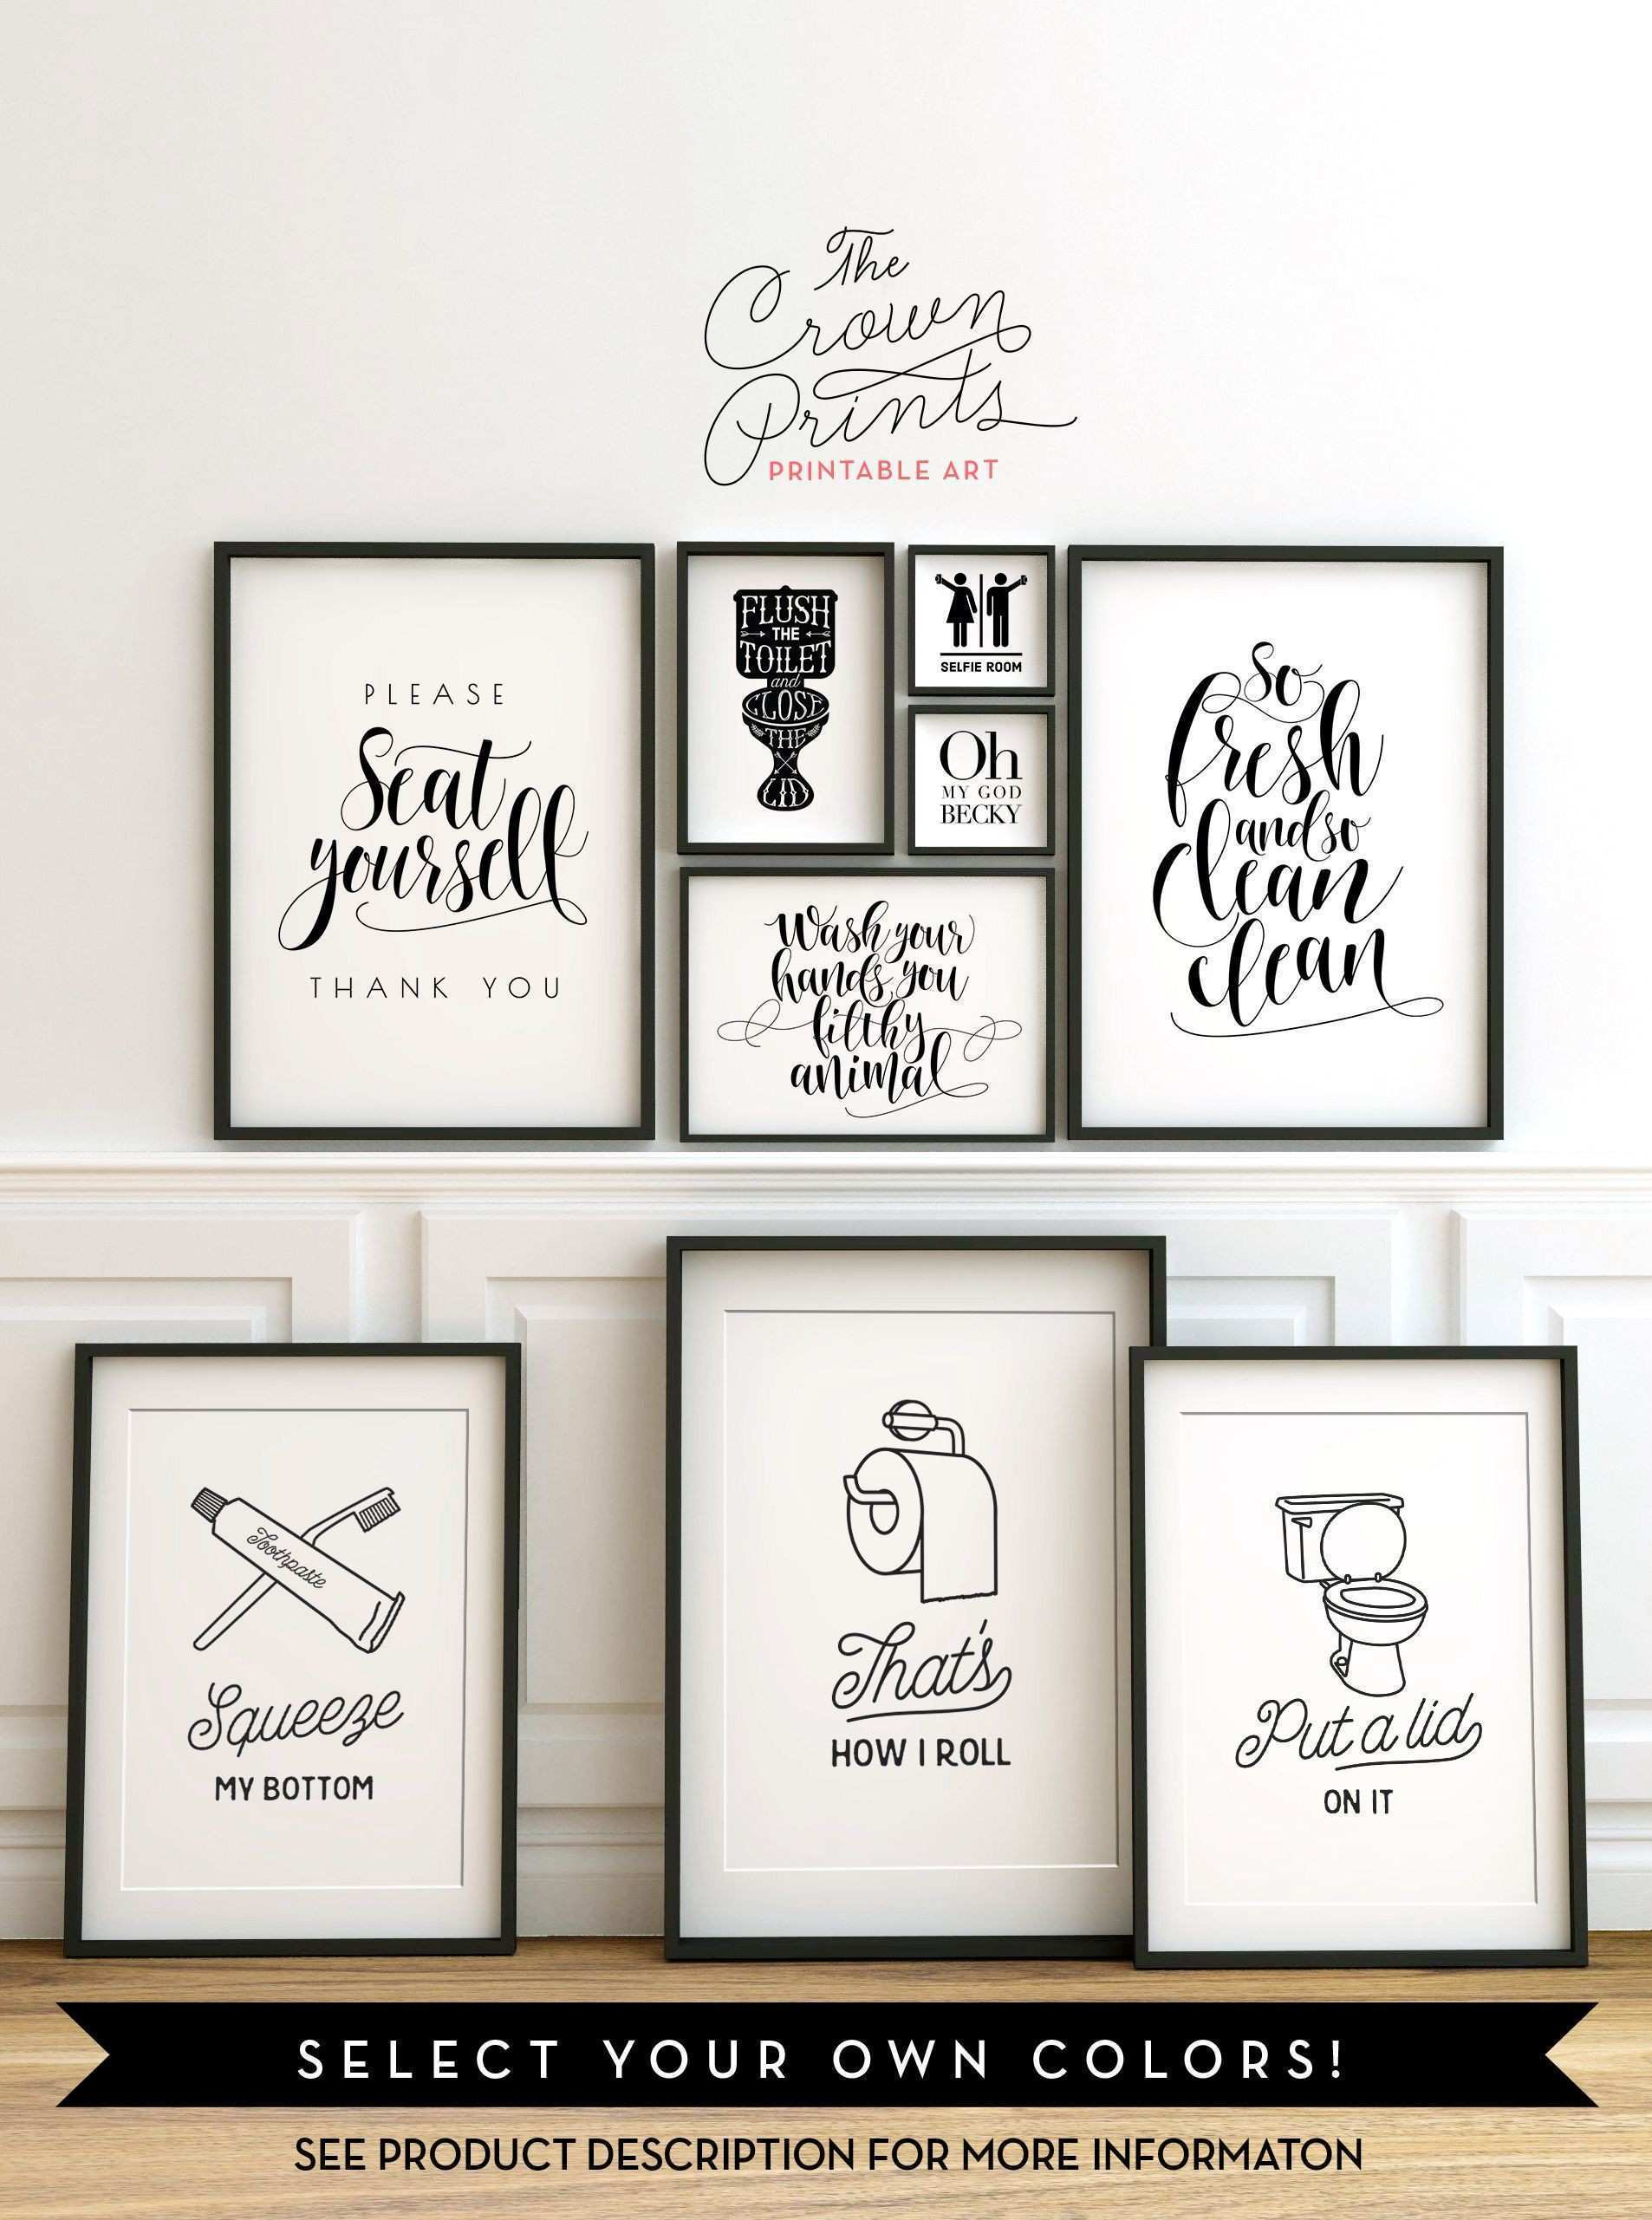 Kids Bathroom Wall Decor Elegant Printable Bathroom Wall Art From the Crown Prints On Etsy Lots Of